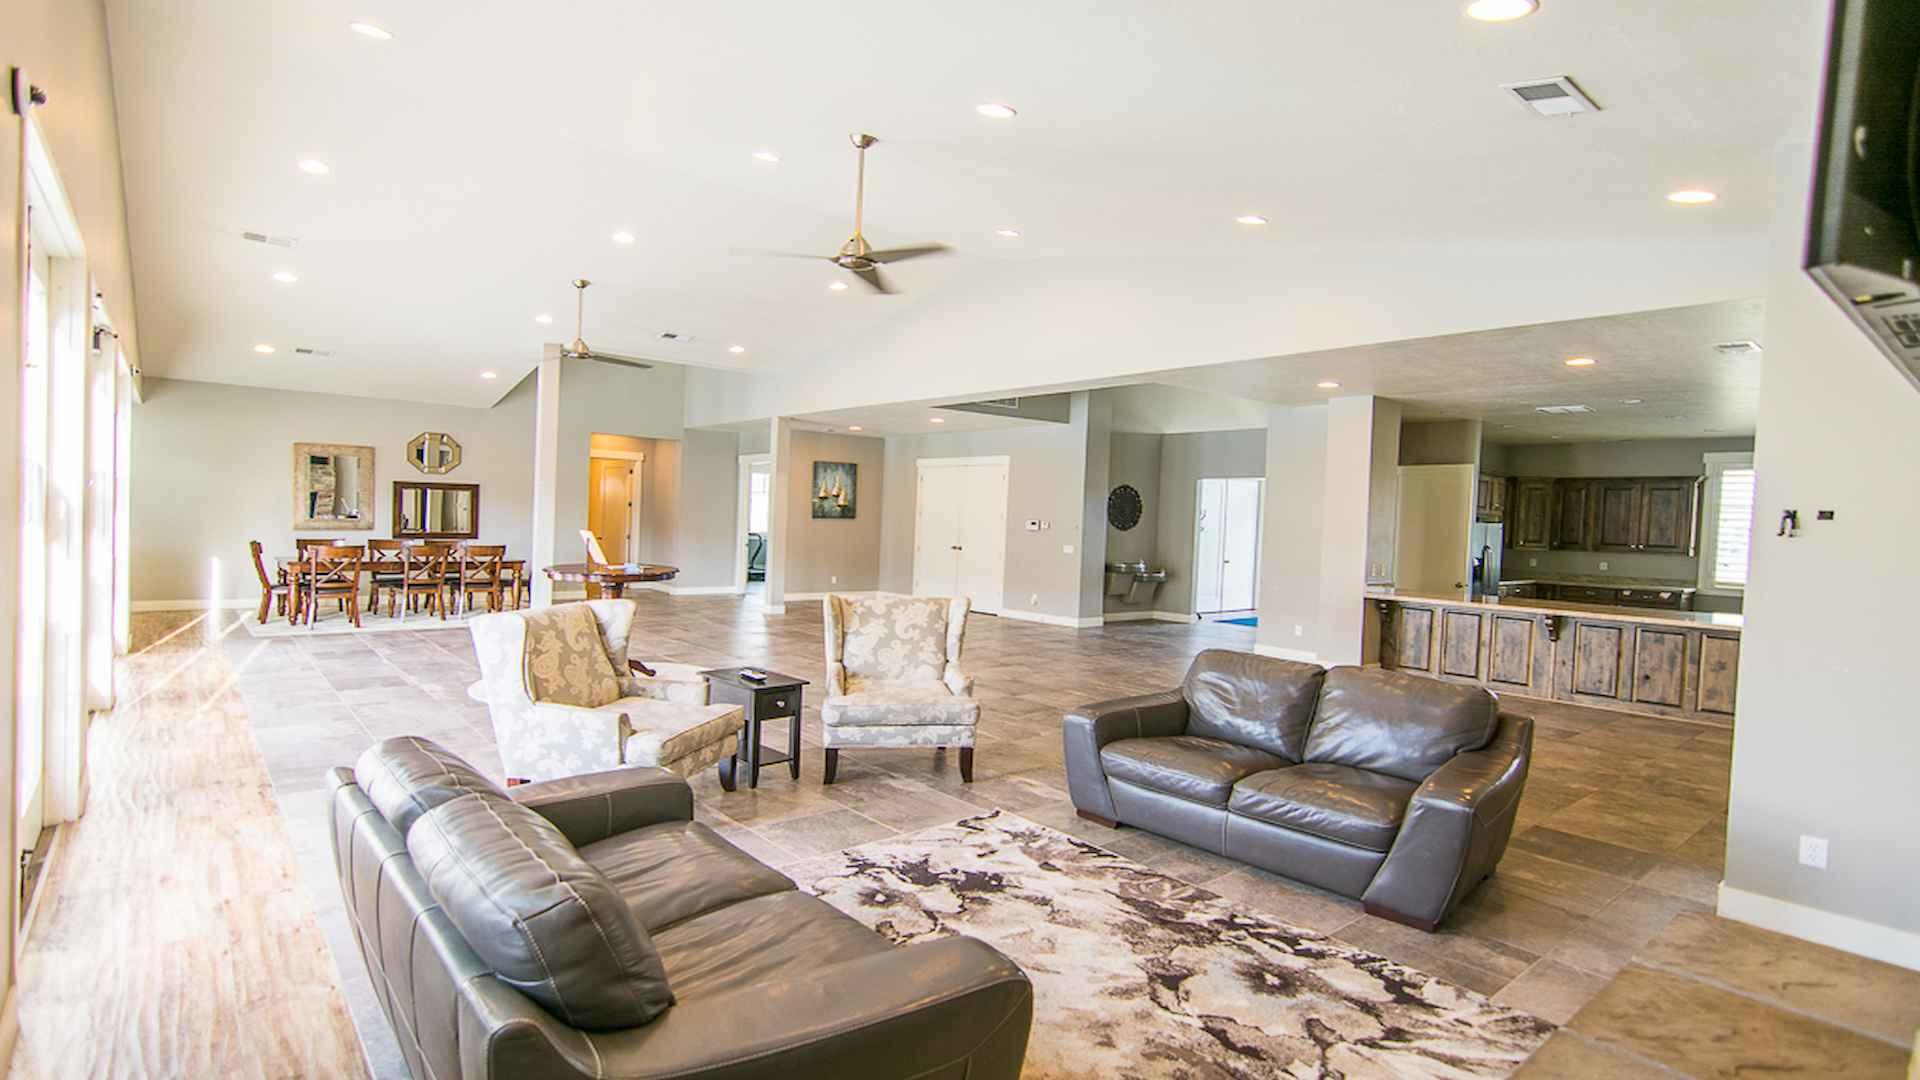 FIG's Edgewater multifamily clubhouse